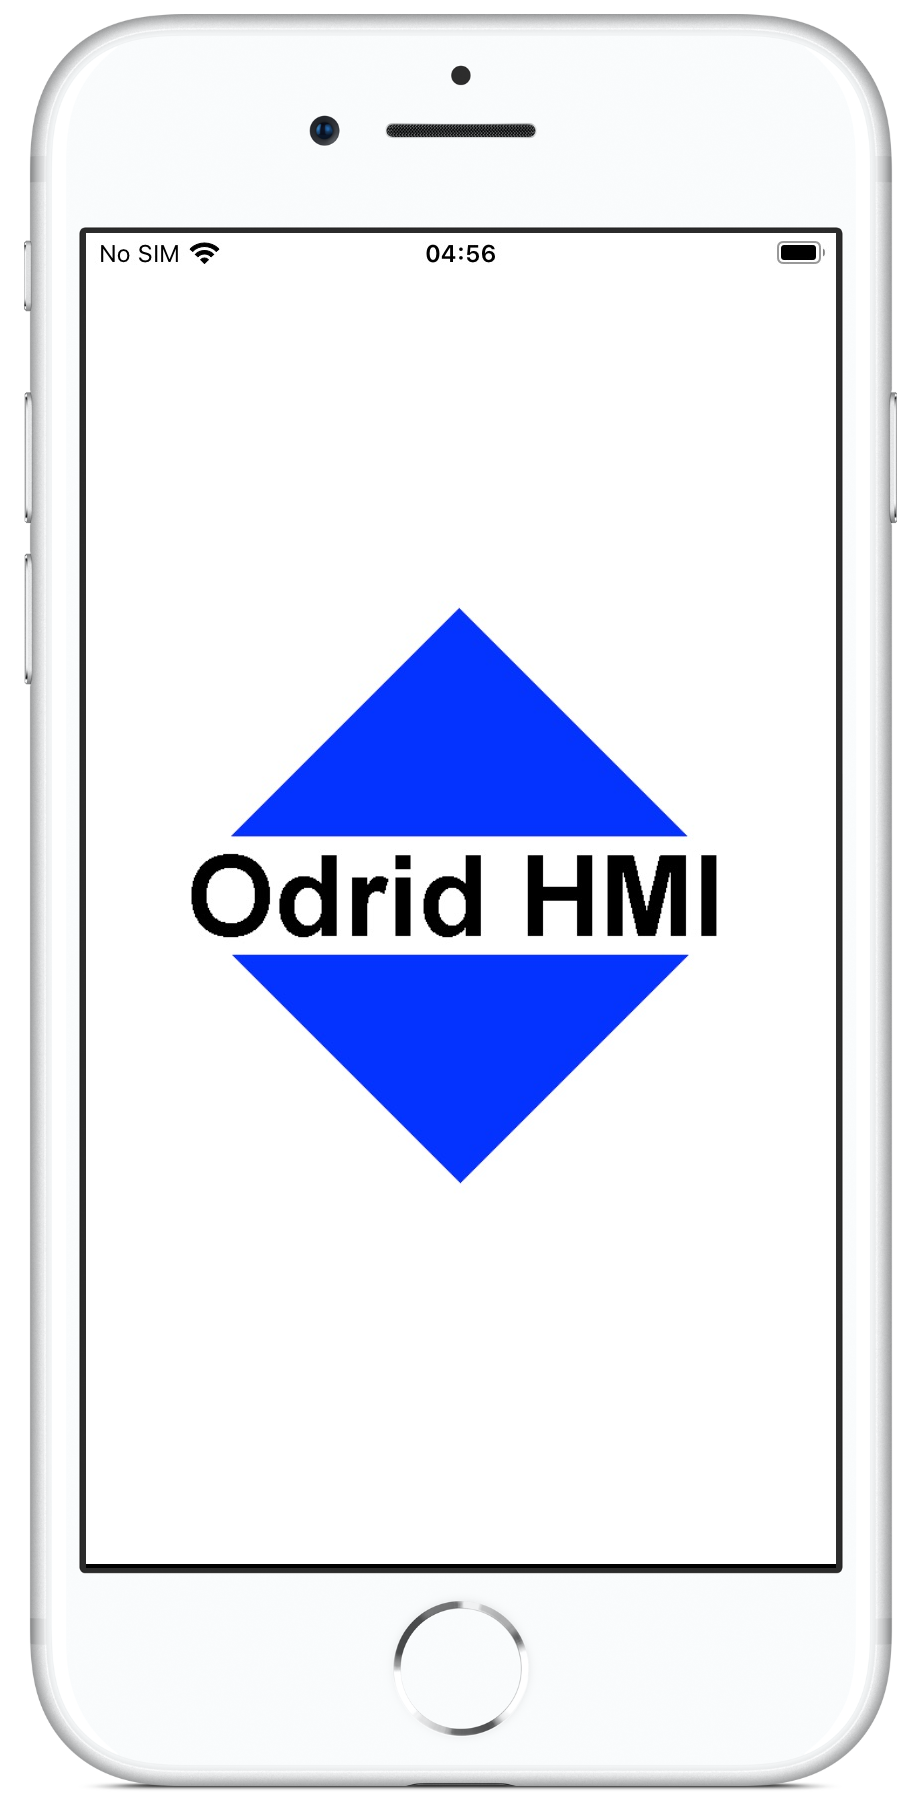 Odrid HMI - Launch screen